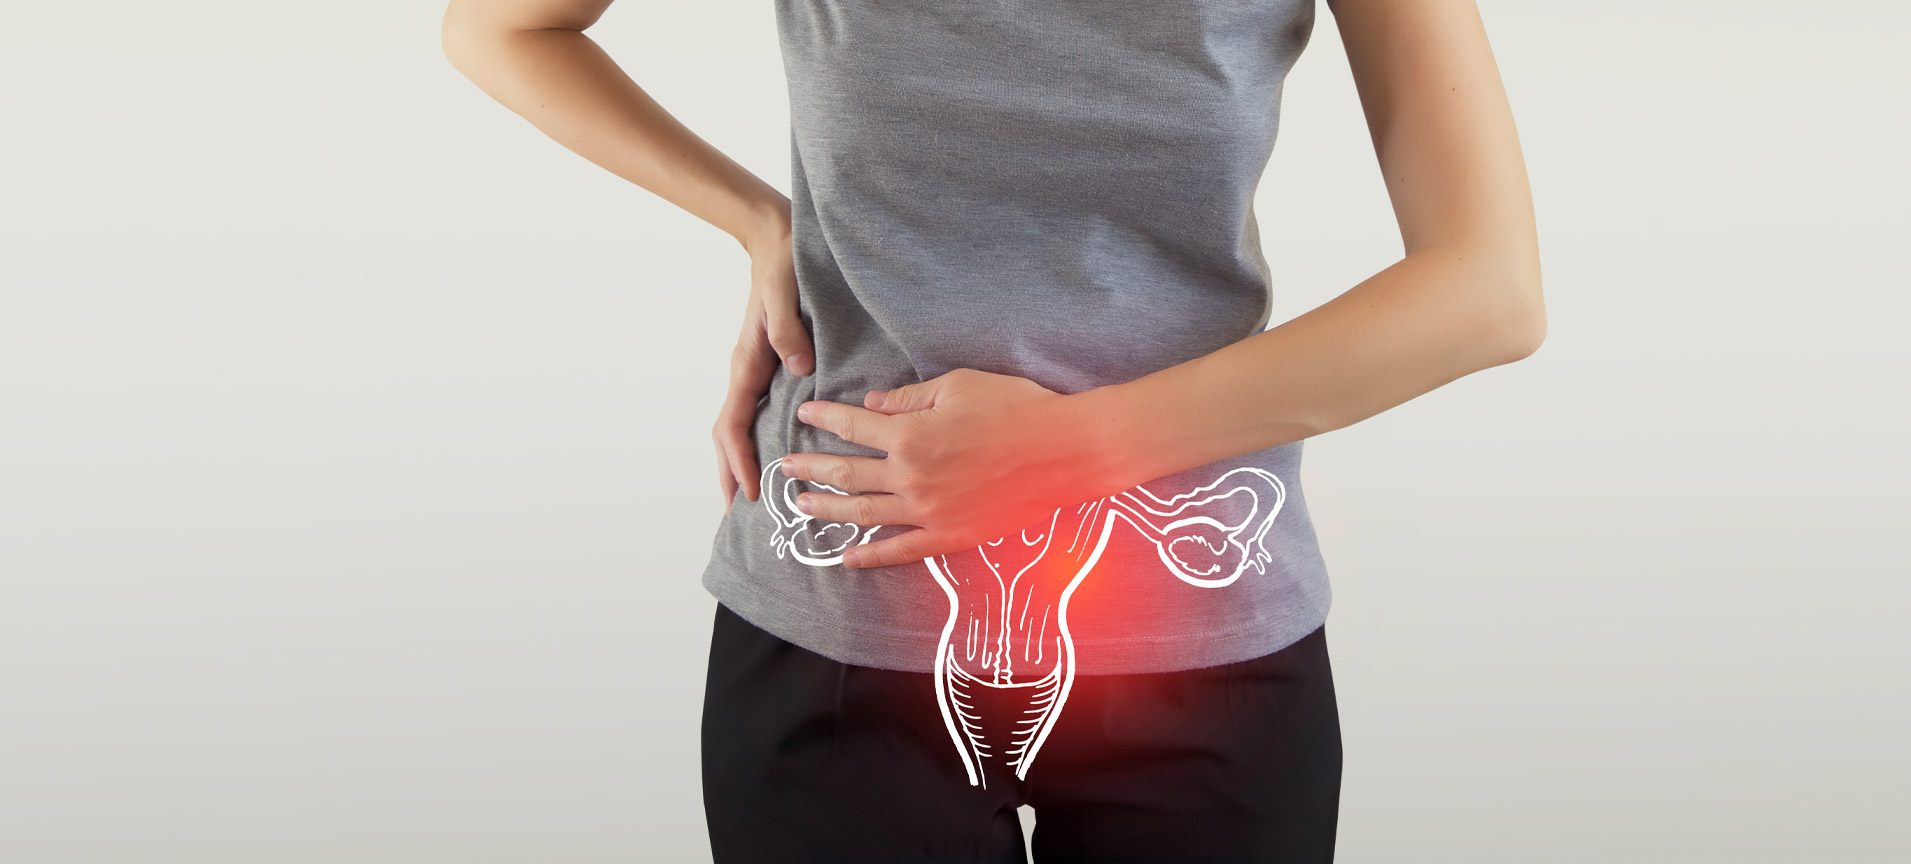 8 Gynecological Conditions That Can Cause Pelvic Pain-198a7b2b